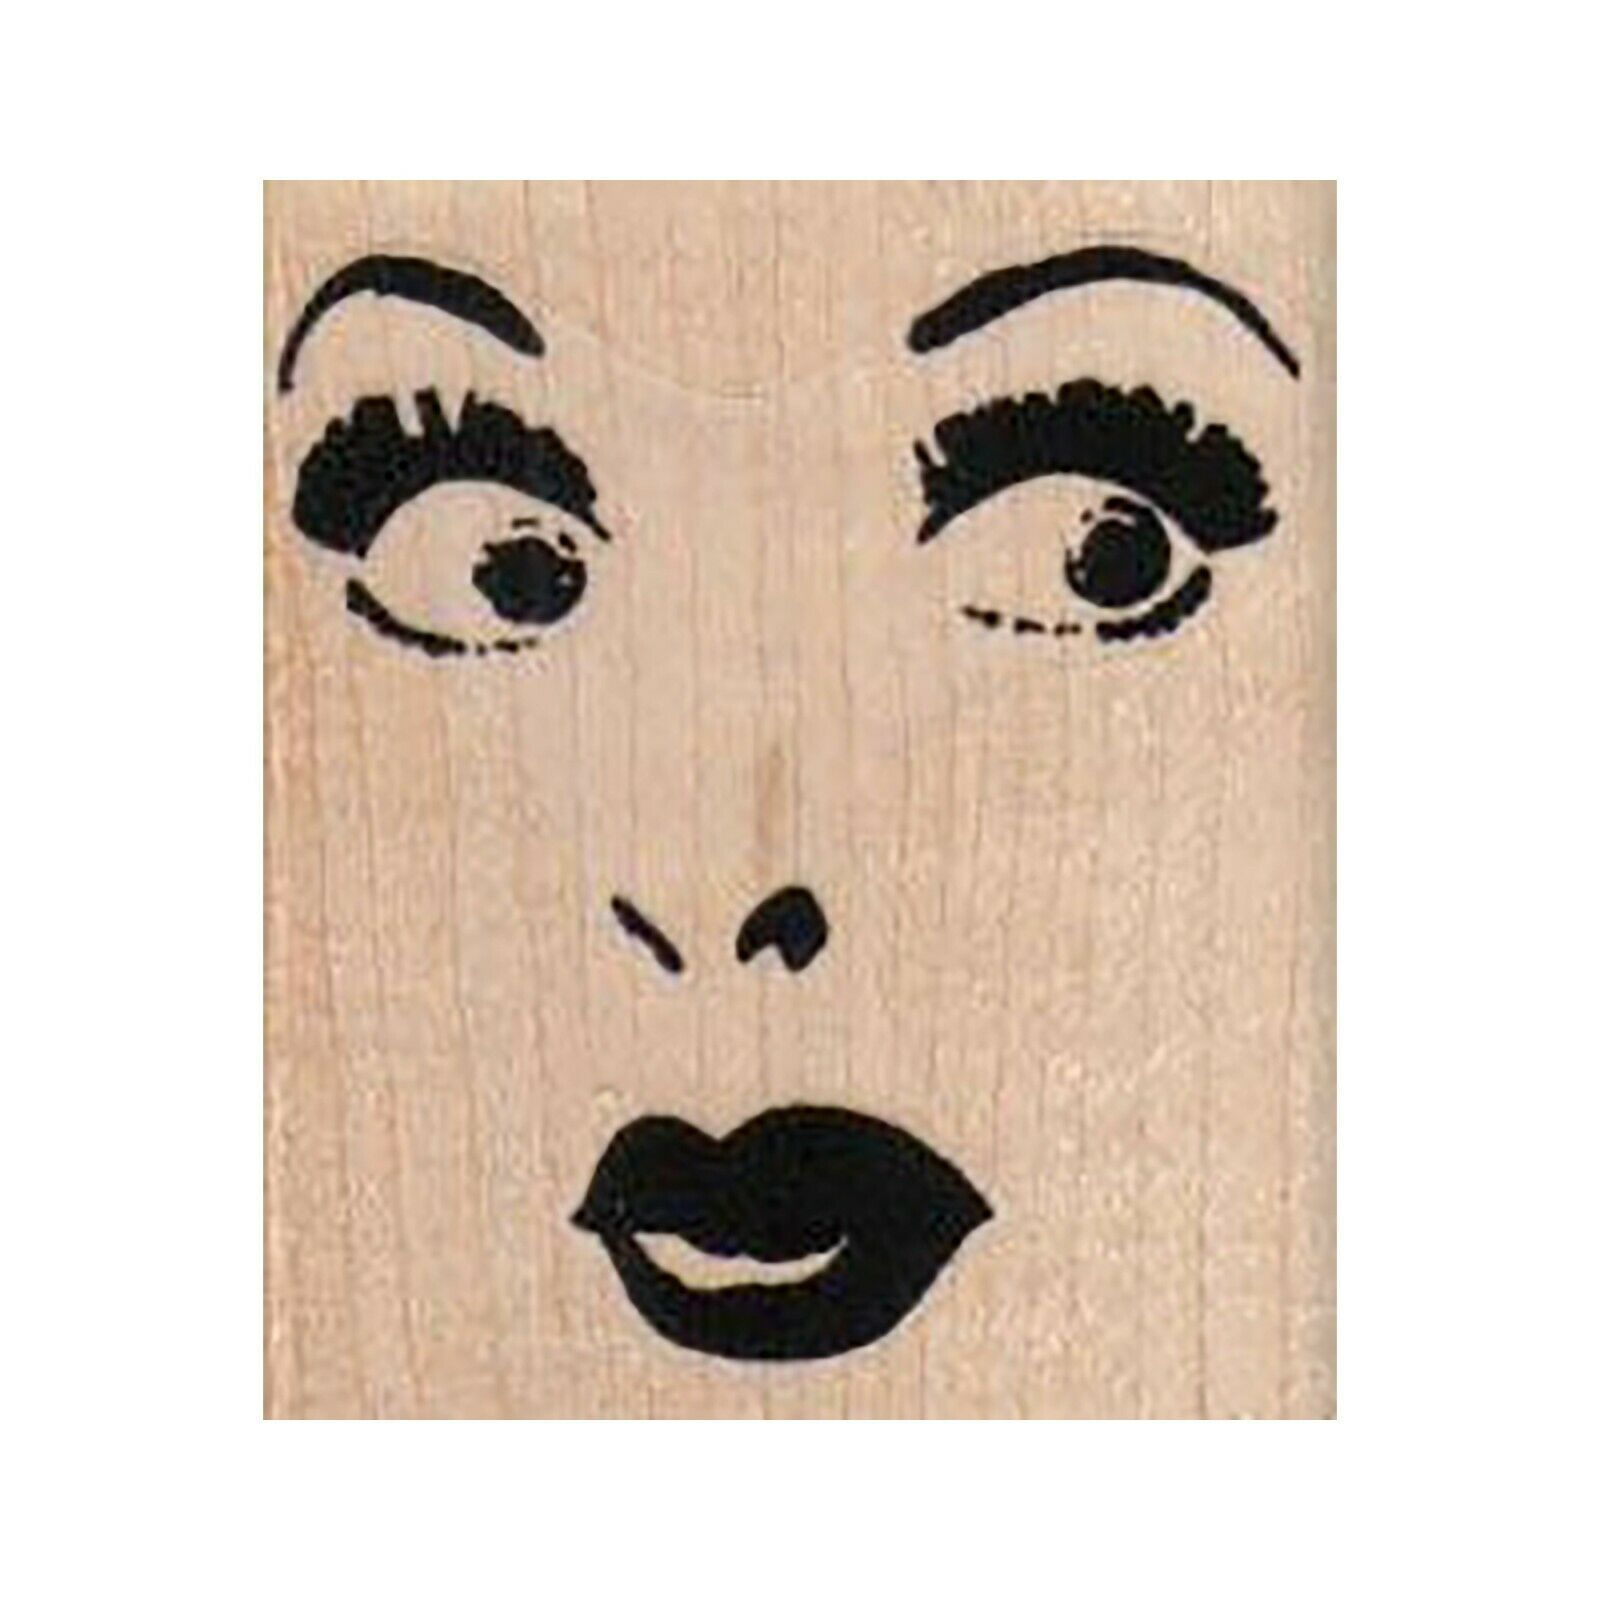 Primary image for Mounted Rubber Stamp, Eyes Nose and Mouth, Face, Woman's Face, Makeup Face, Lady